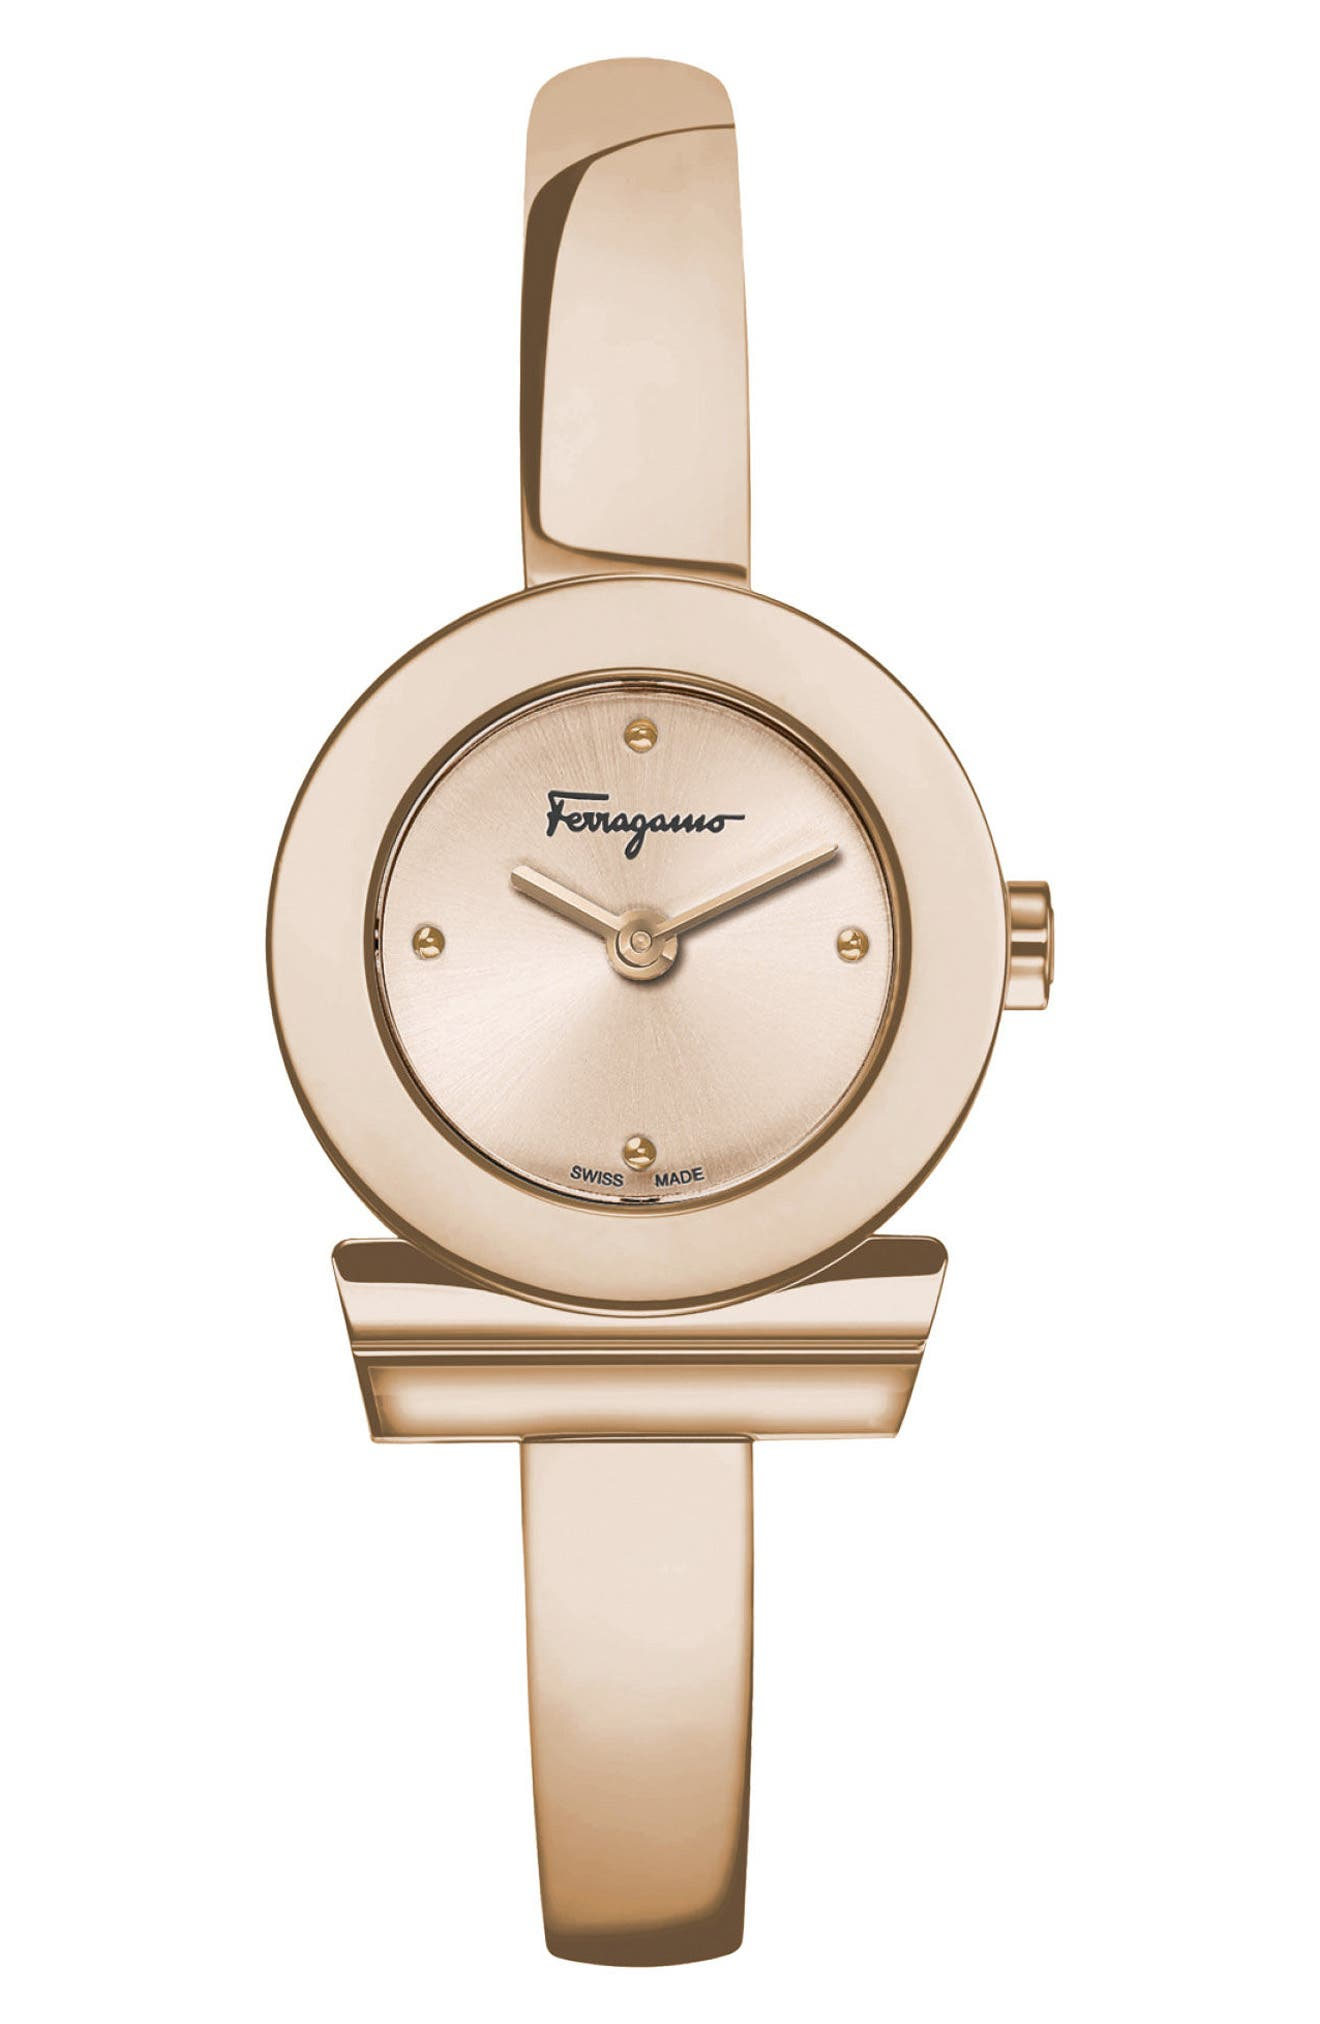 Main Image - Salvatore Ferragamo Gancino Bracelet Watch, 22.5mm